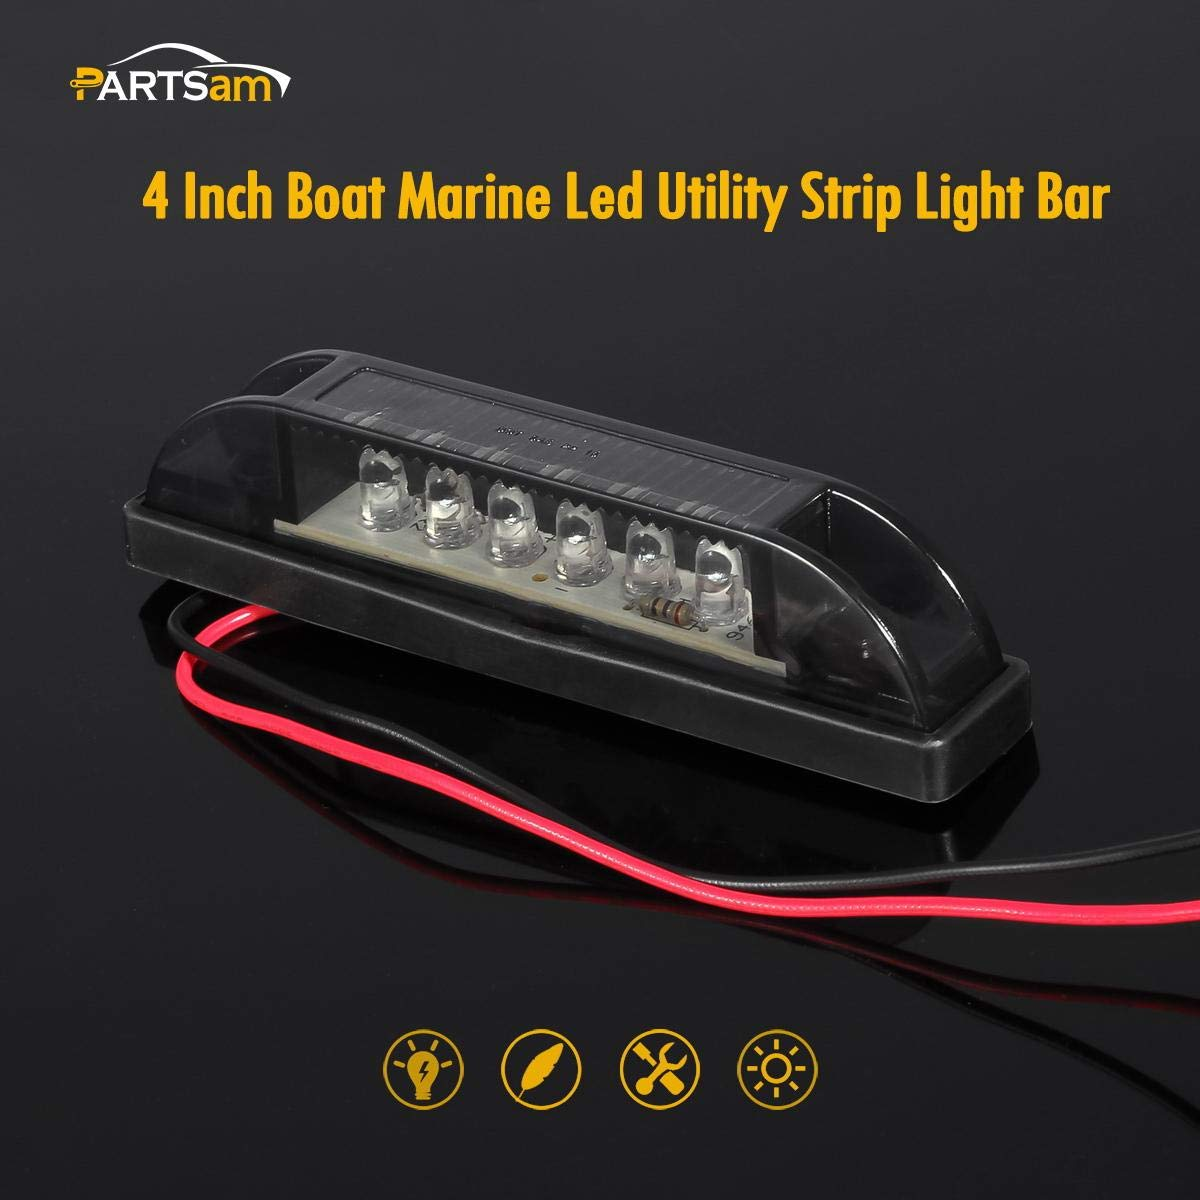 Partsam 6PCS 4 Smoke Lens White 12V 6 LED Utility Strip Bar Lights Sealed Side Marker Lights Smoke Lens RVS for Marine Boats Trailer Truck Bus Light